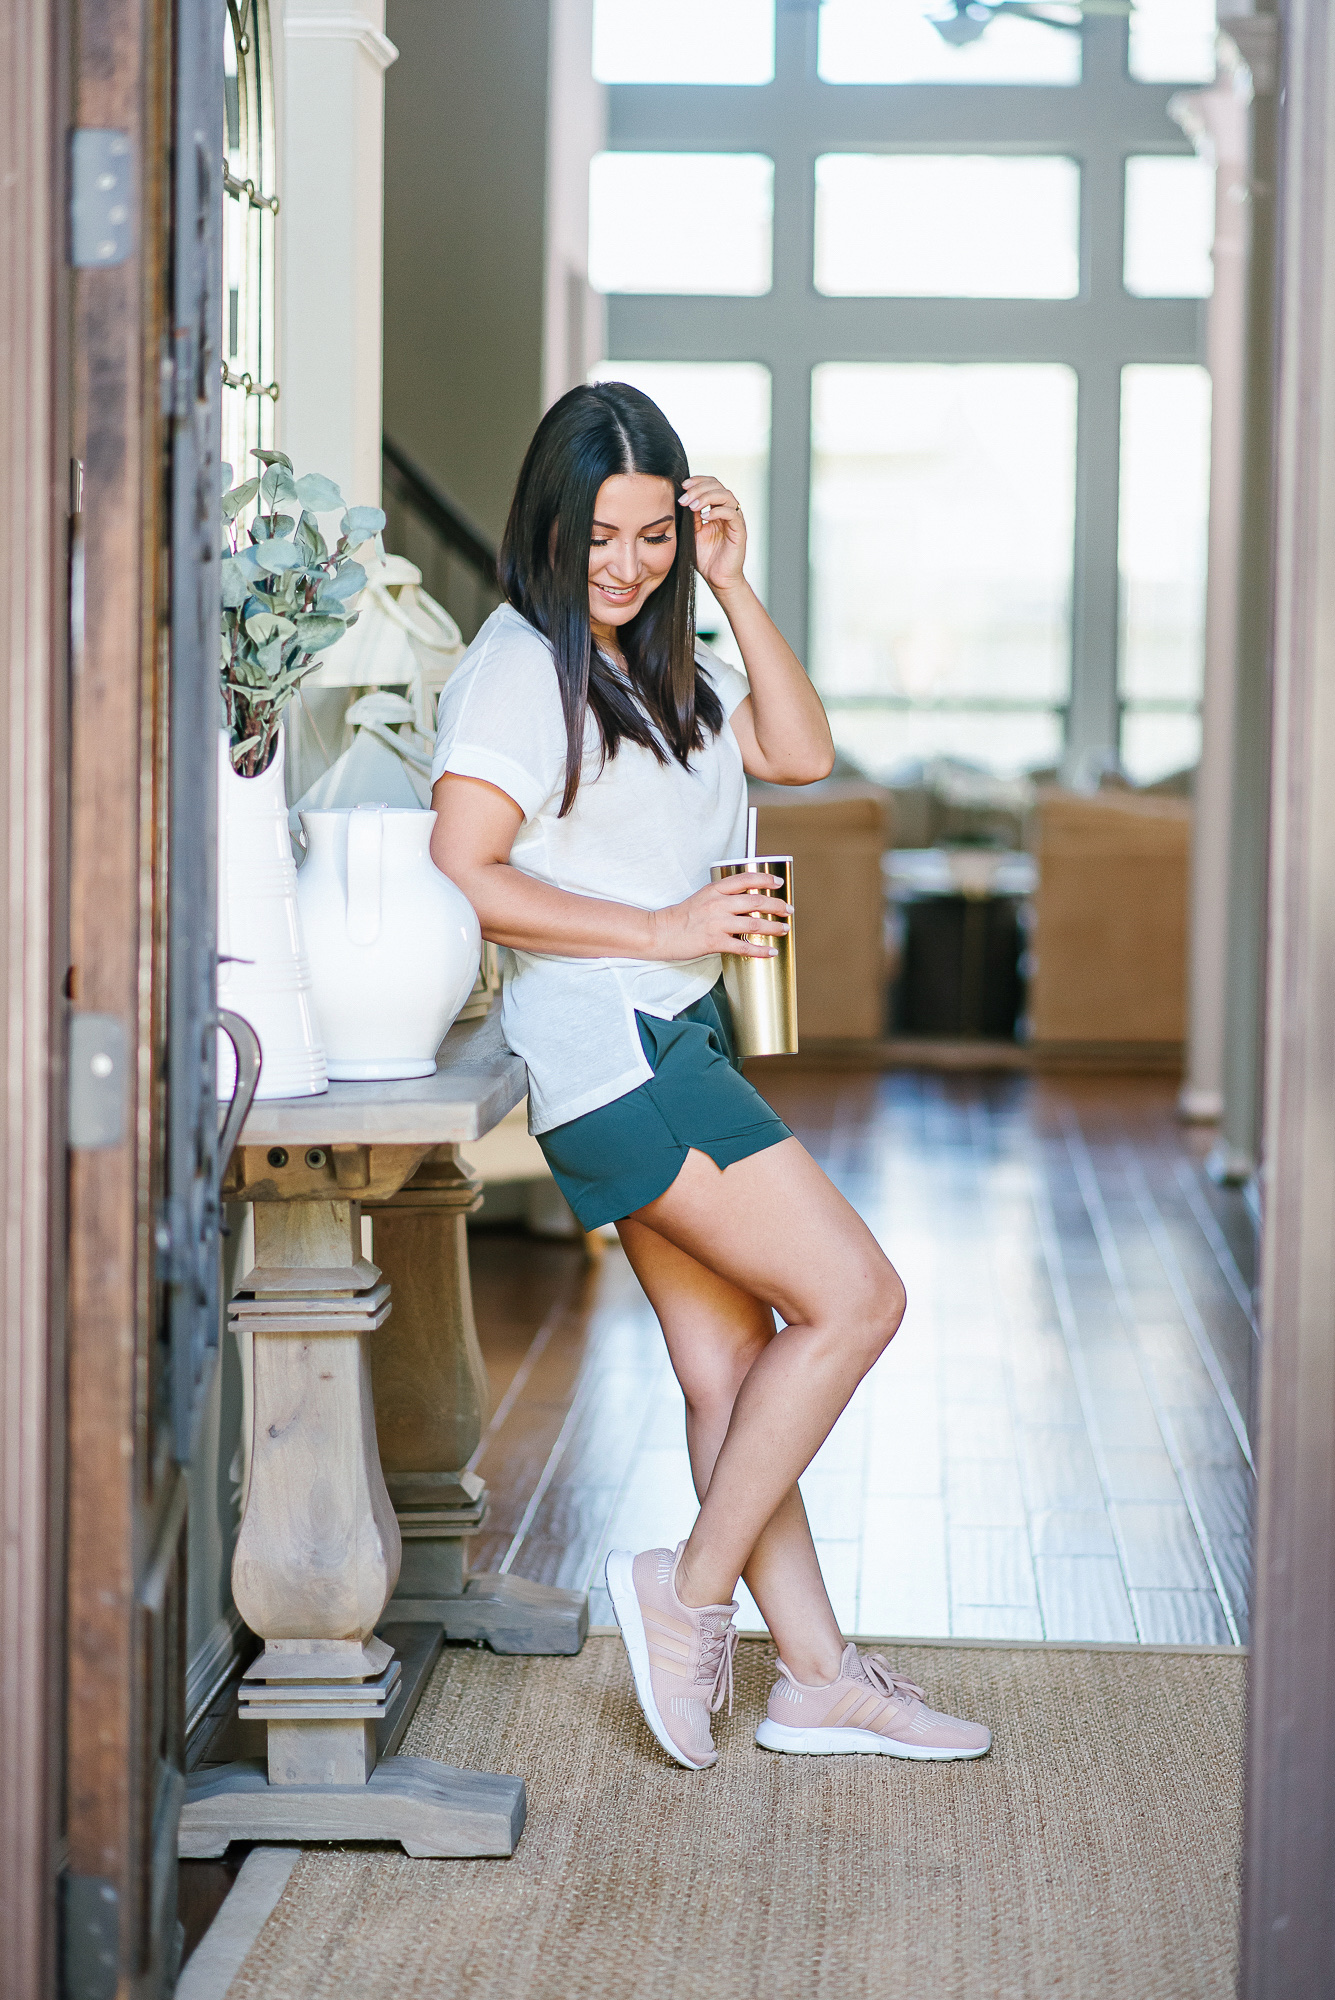 Houston Fashion Blogger LuxMommy Shares Cute Activewear To Motivate You